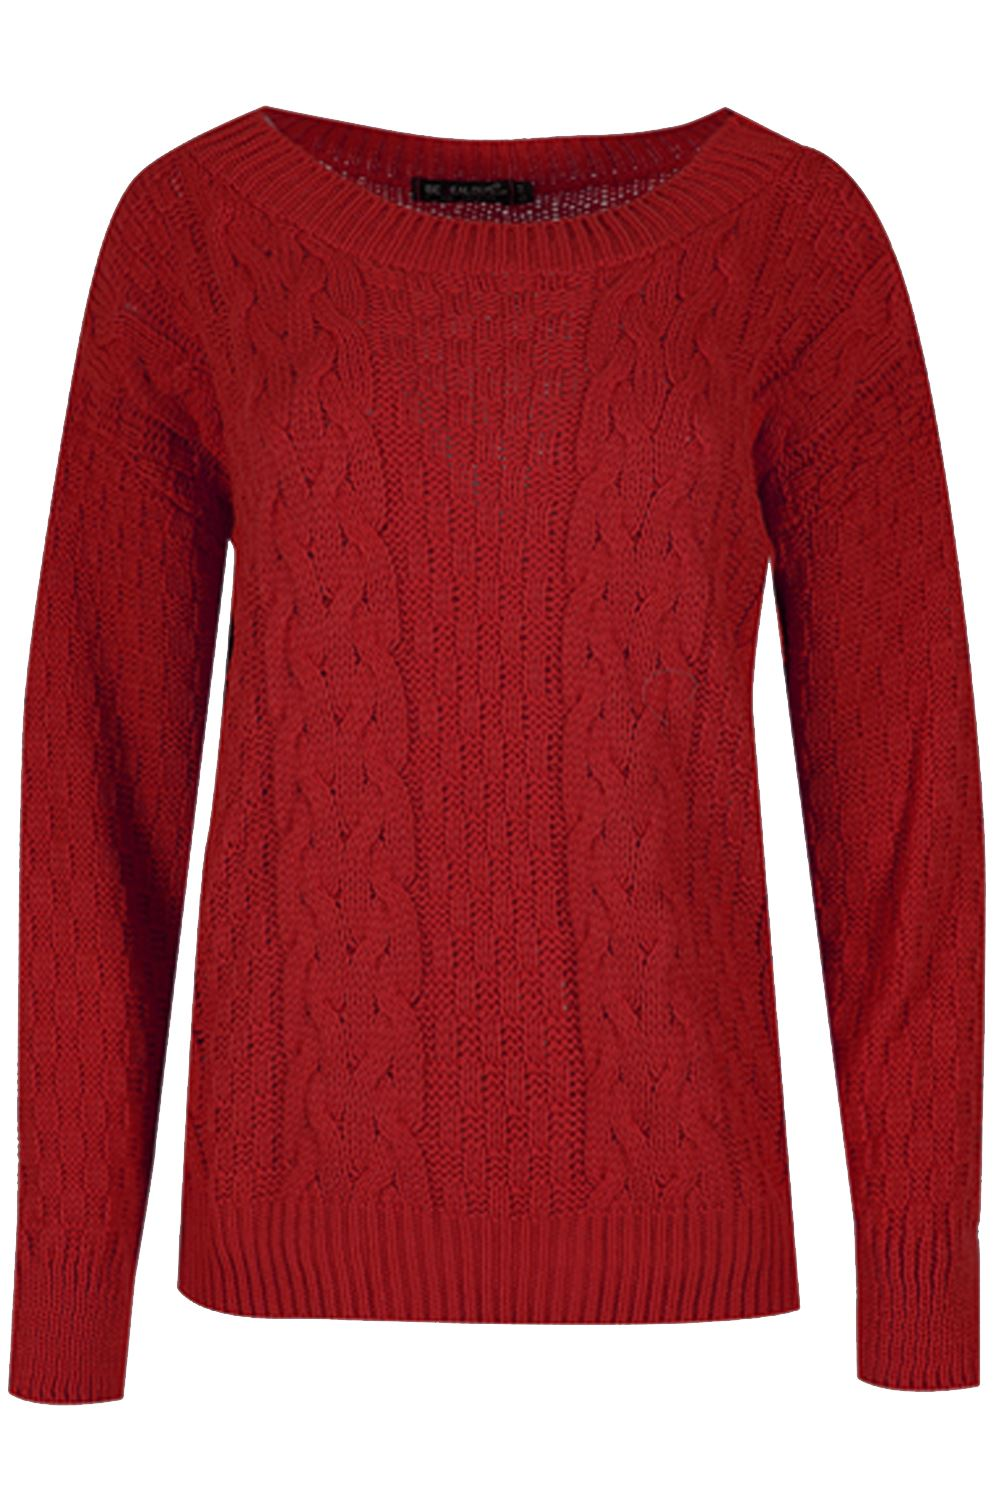 Womens-Ladies-Grid-Chunky-Knit-Cable-Knitted-Round-Neck-Oversized-Baggy-Jumper